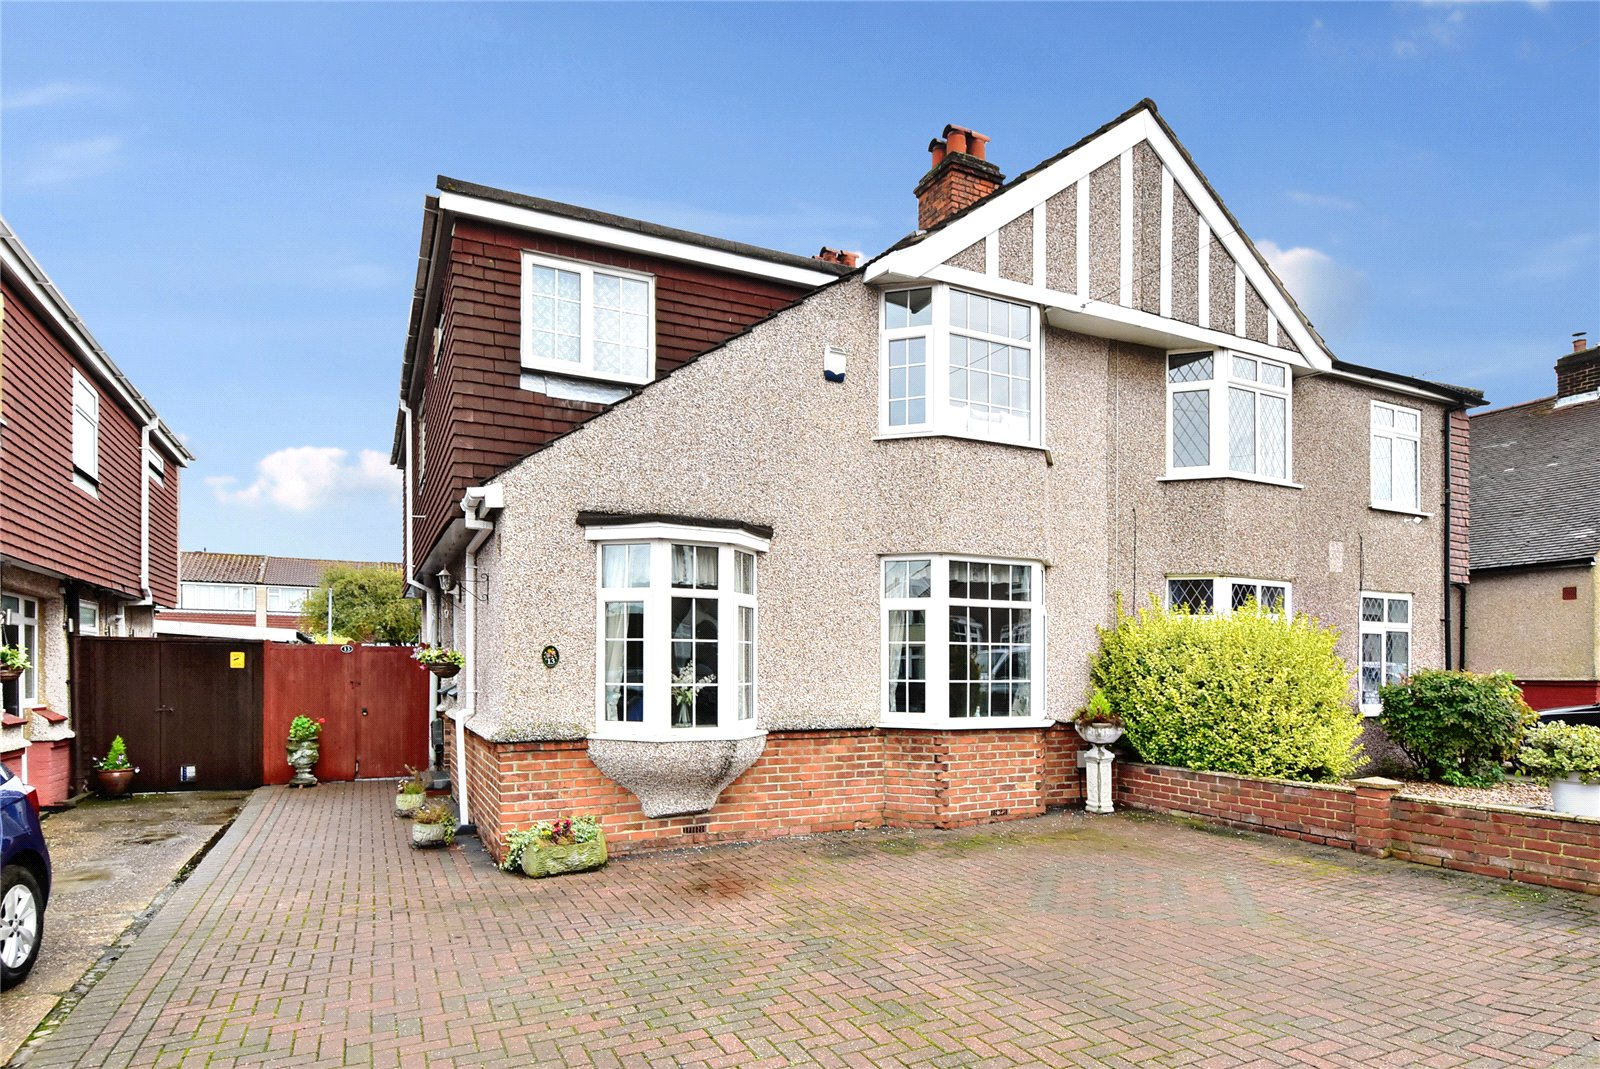 Heathclose Avenue, West Dartford, Kent, DA1